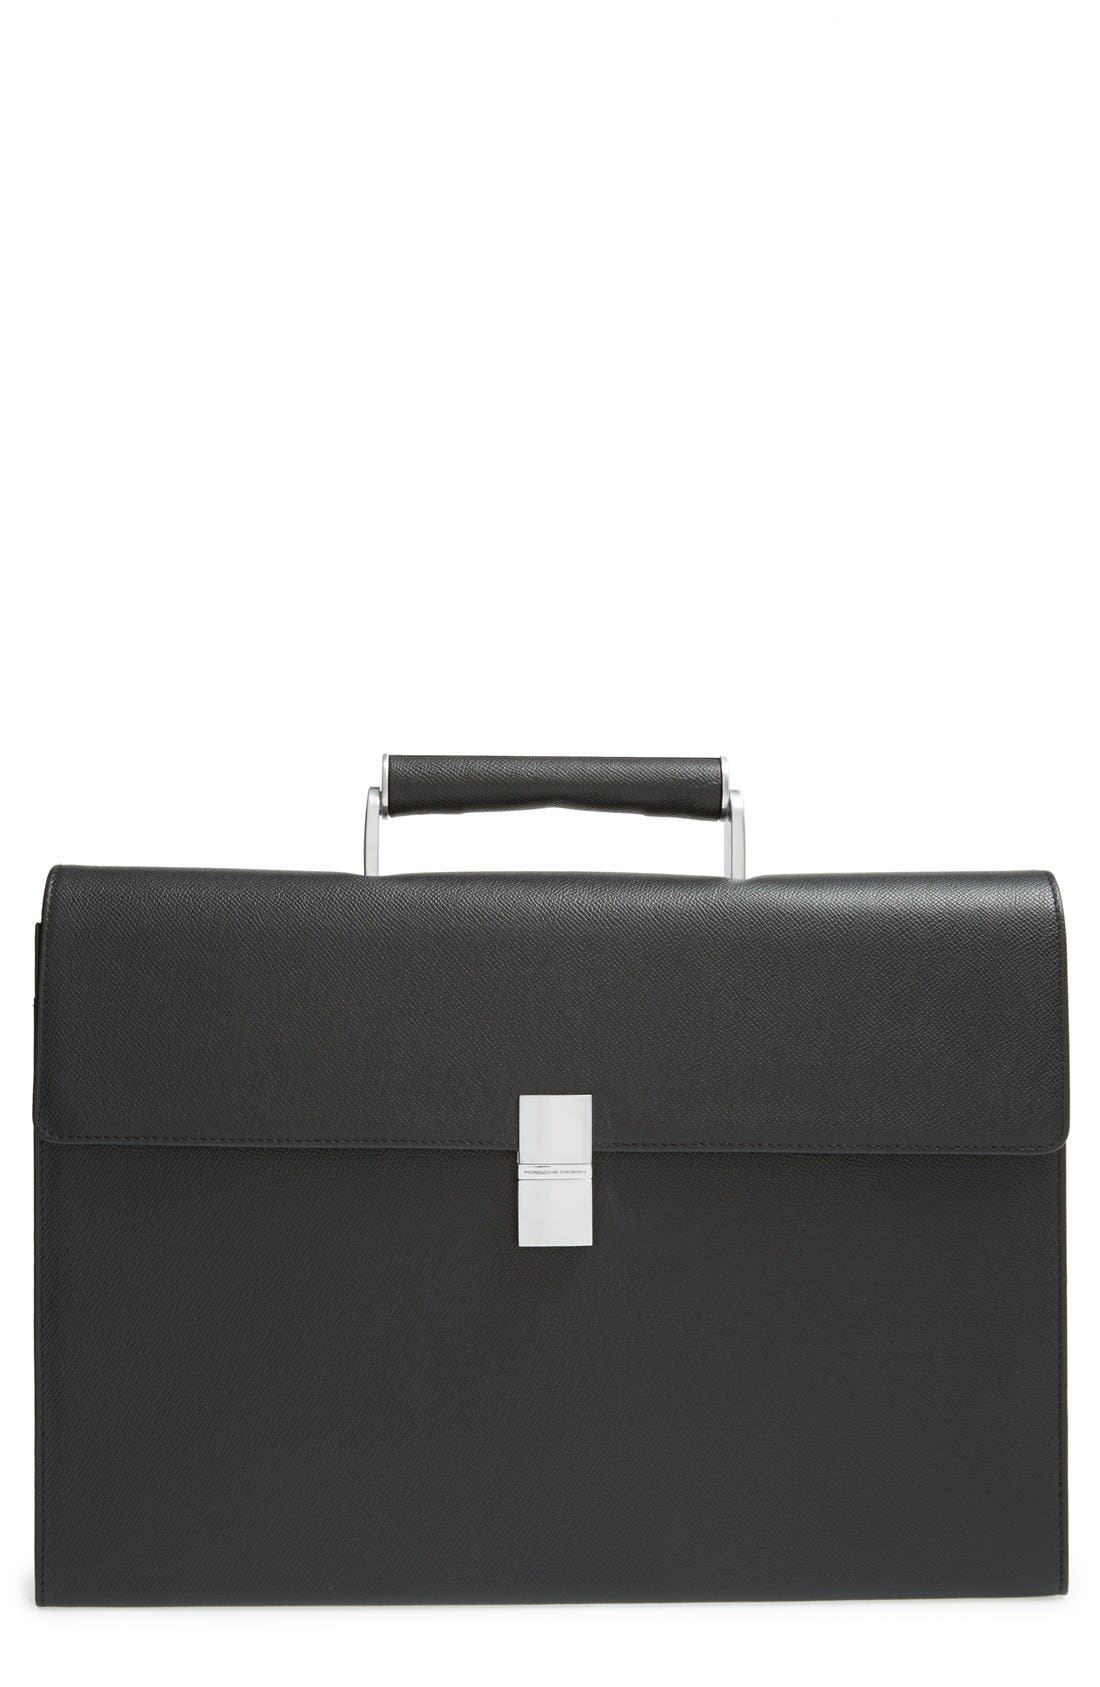 Porsche Design 'French Classic 3.0' Leather Briefcase